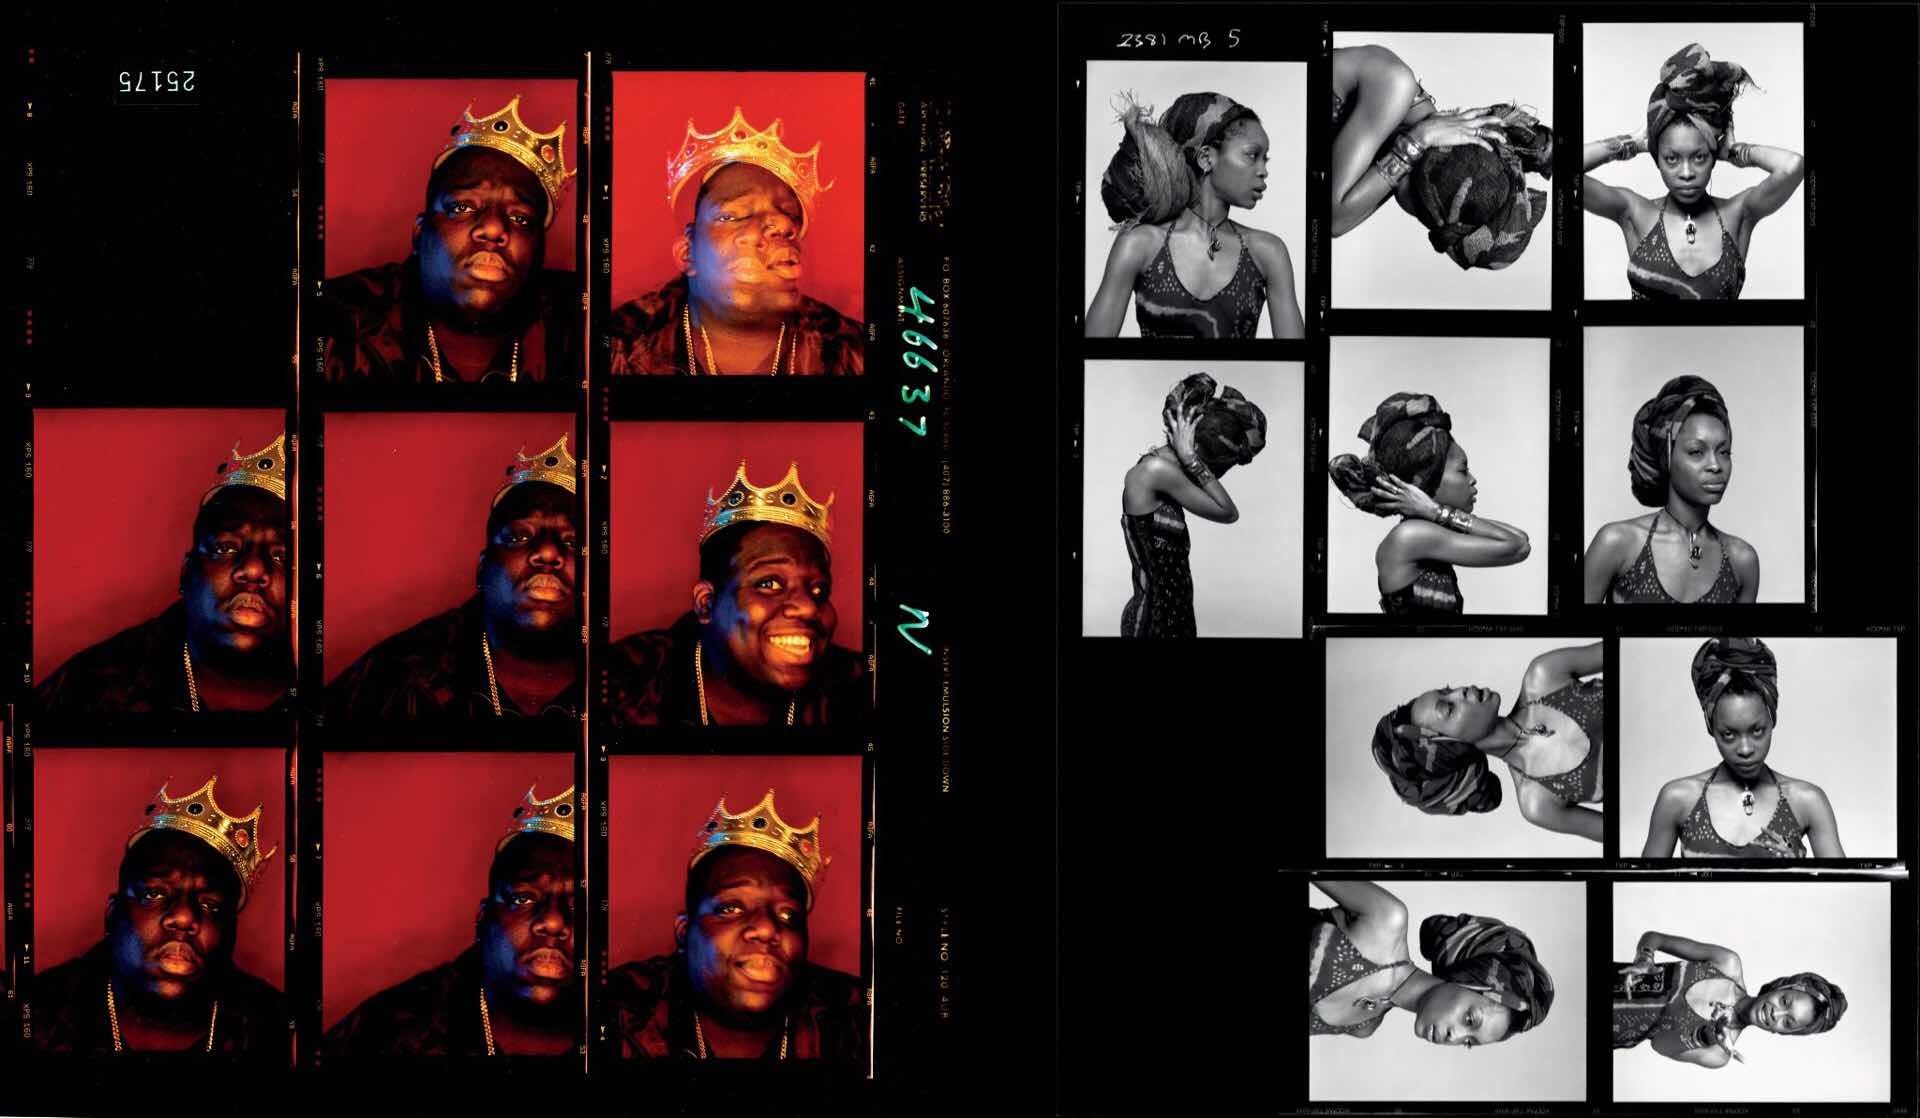 Photos by Barron Claiborne (left) and Marc Baptiste (right)